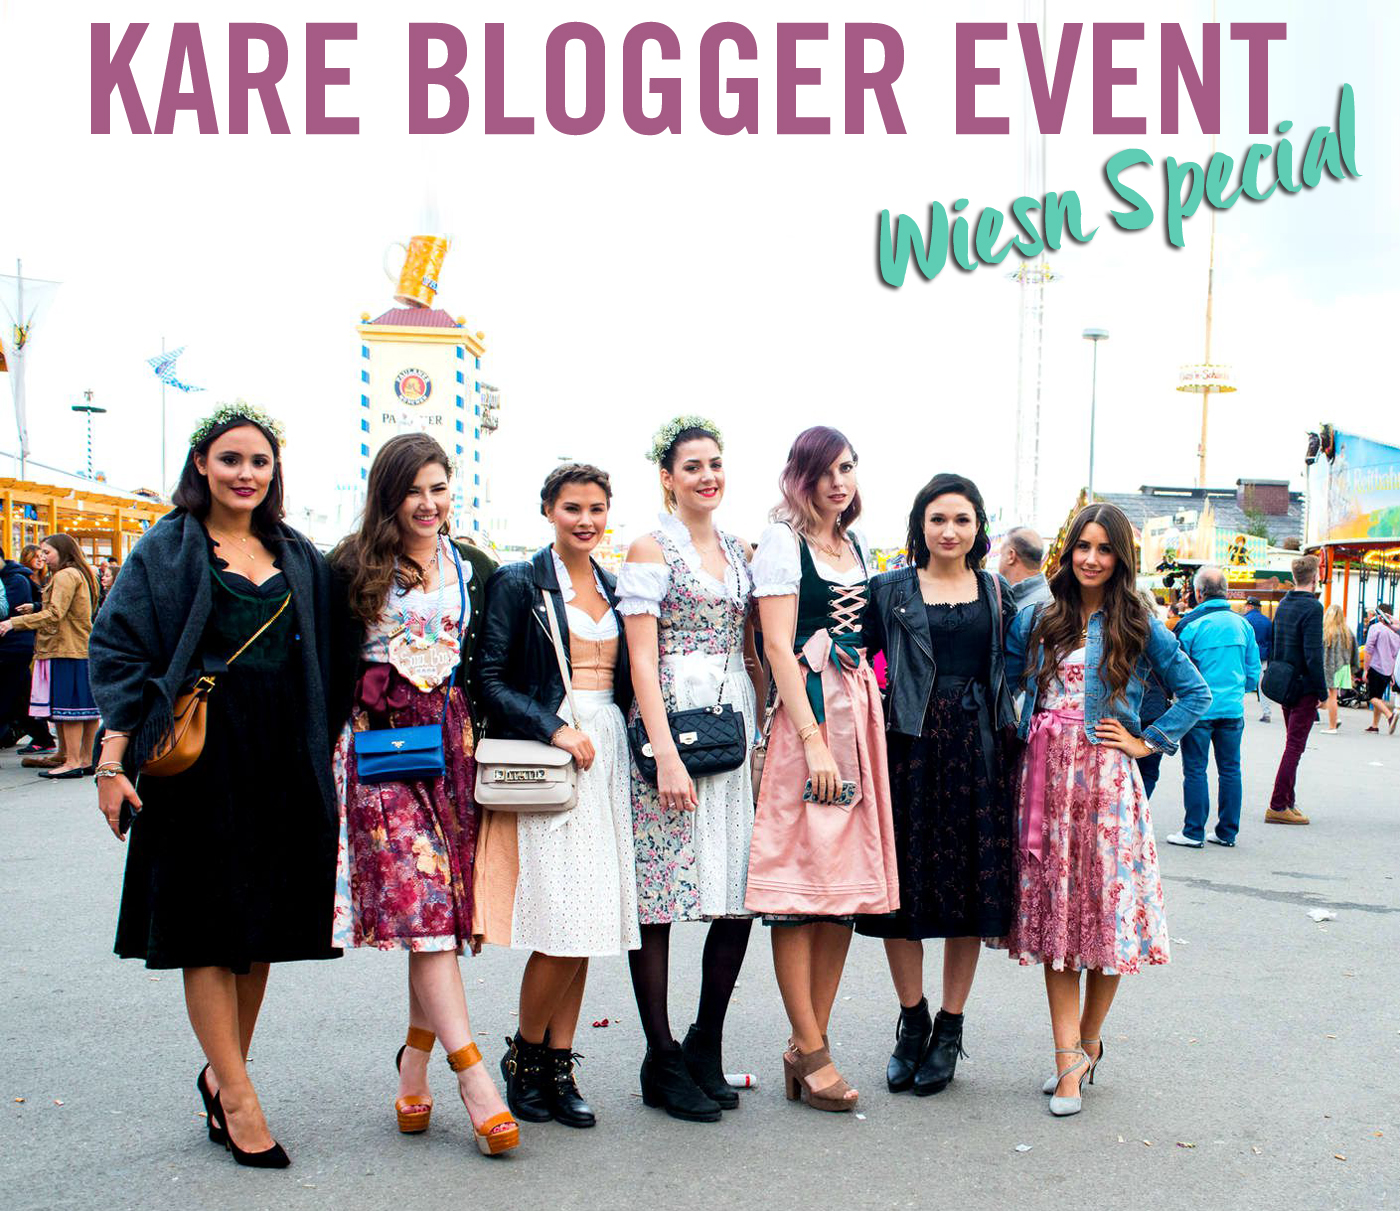 kare blogger event wiesn special the kare blog. Black Bedroom Furniture Sets. Home Design Ideas